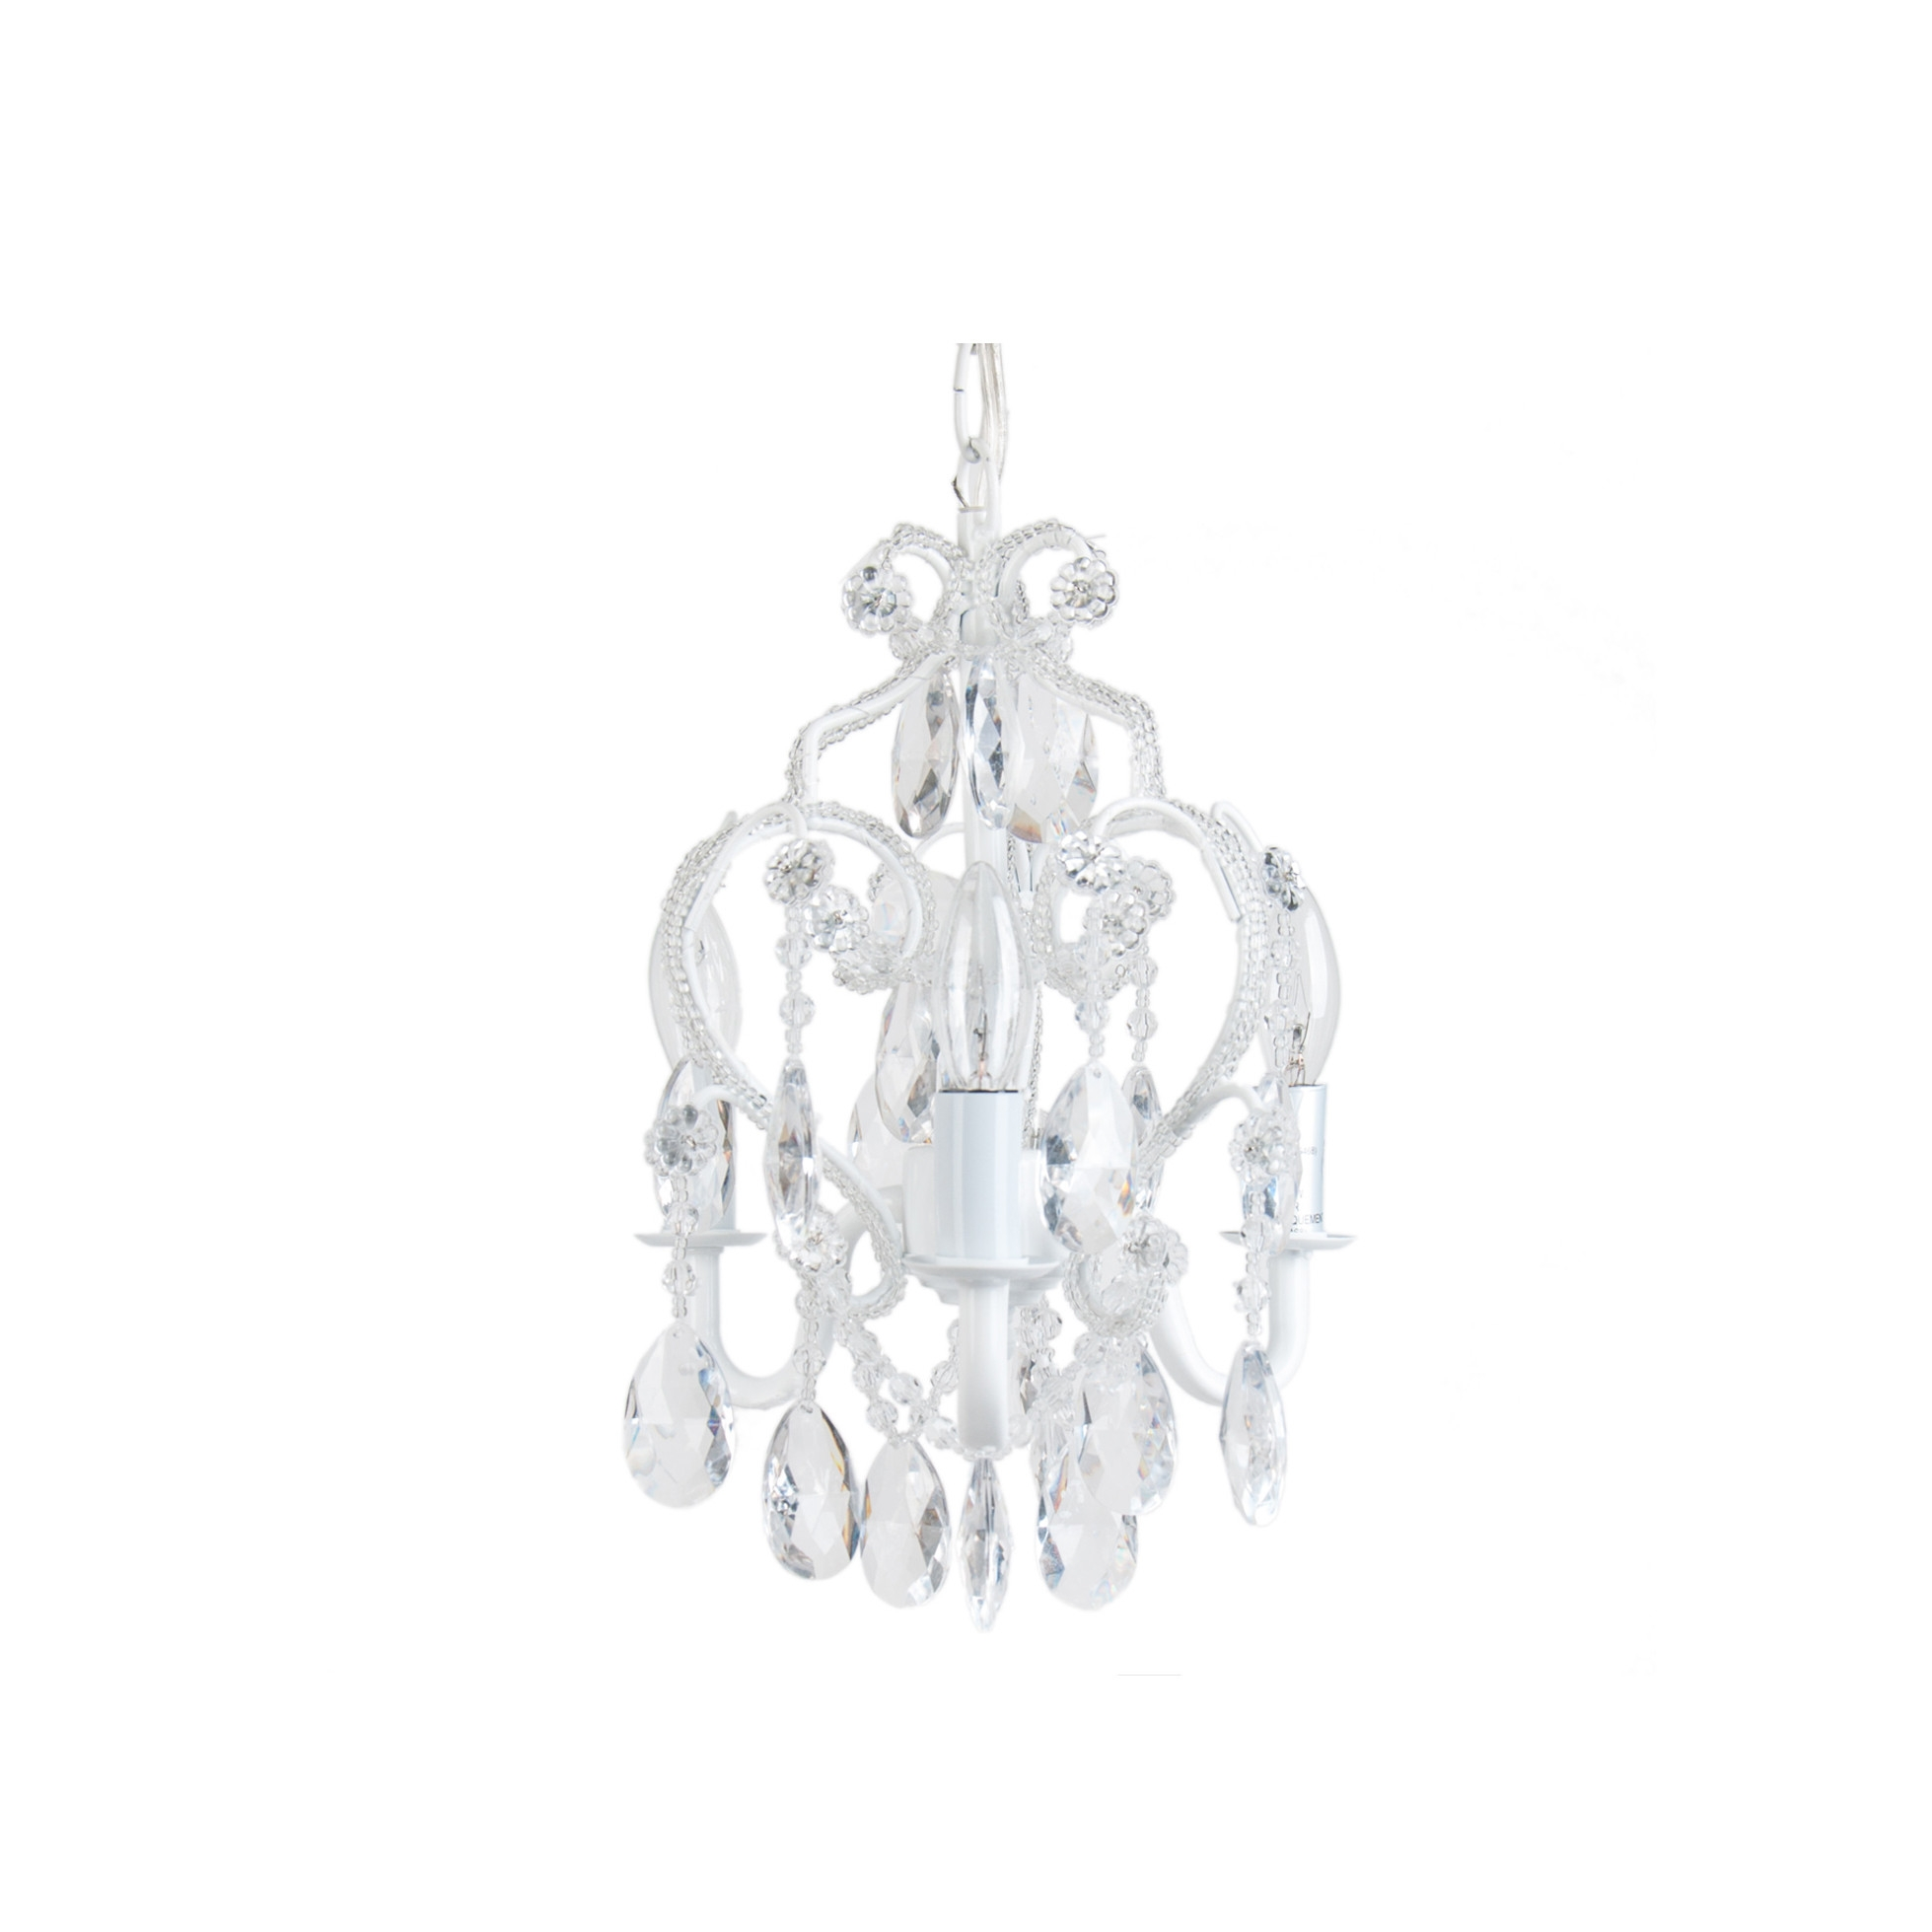 Cosy Tadpole Chandeliers In Small Chandelier Decoration Ideas With With Regard To Small White Chandeliers (Image 13 of 25)